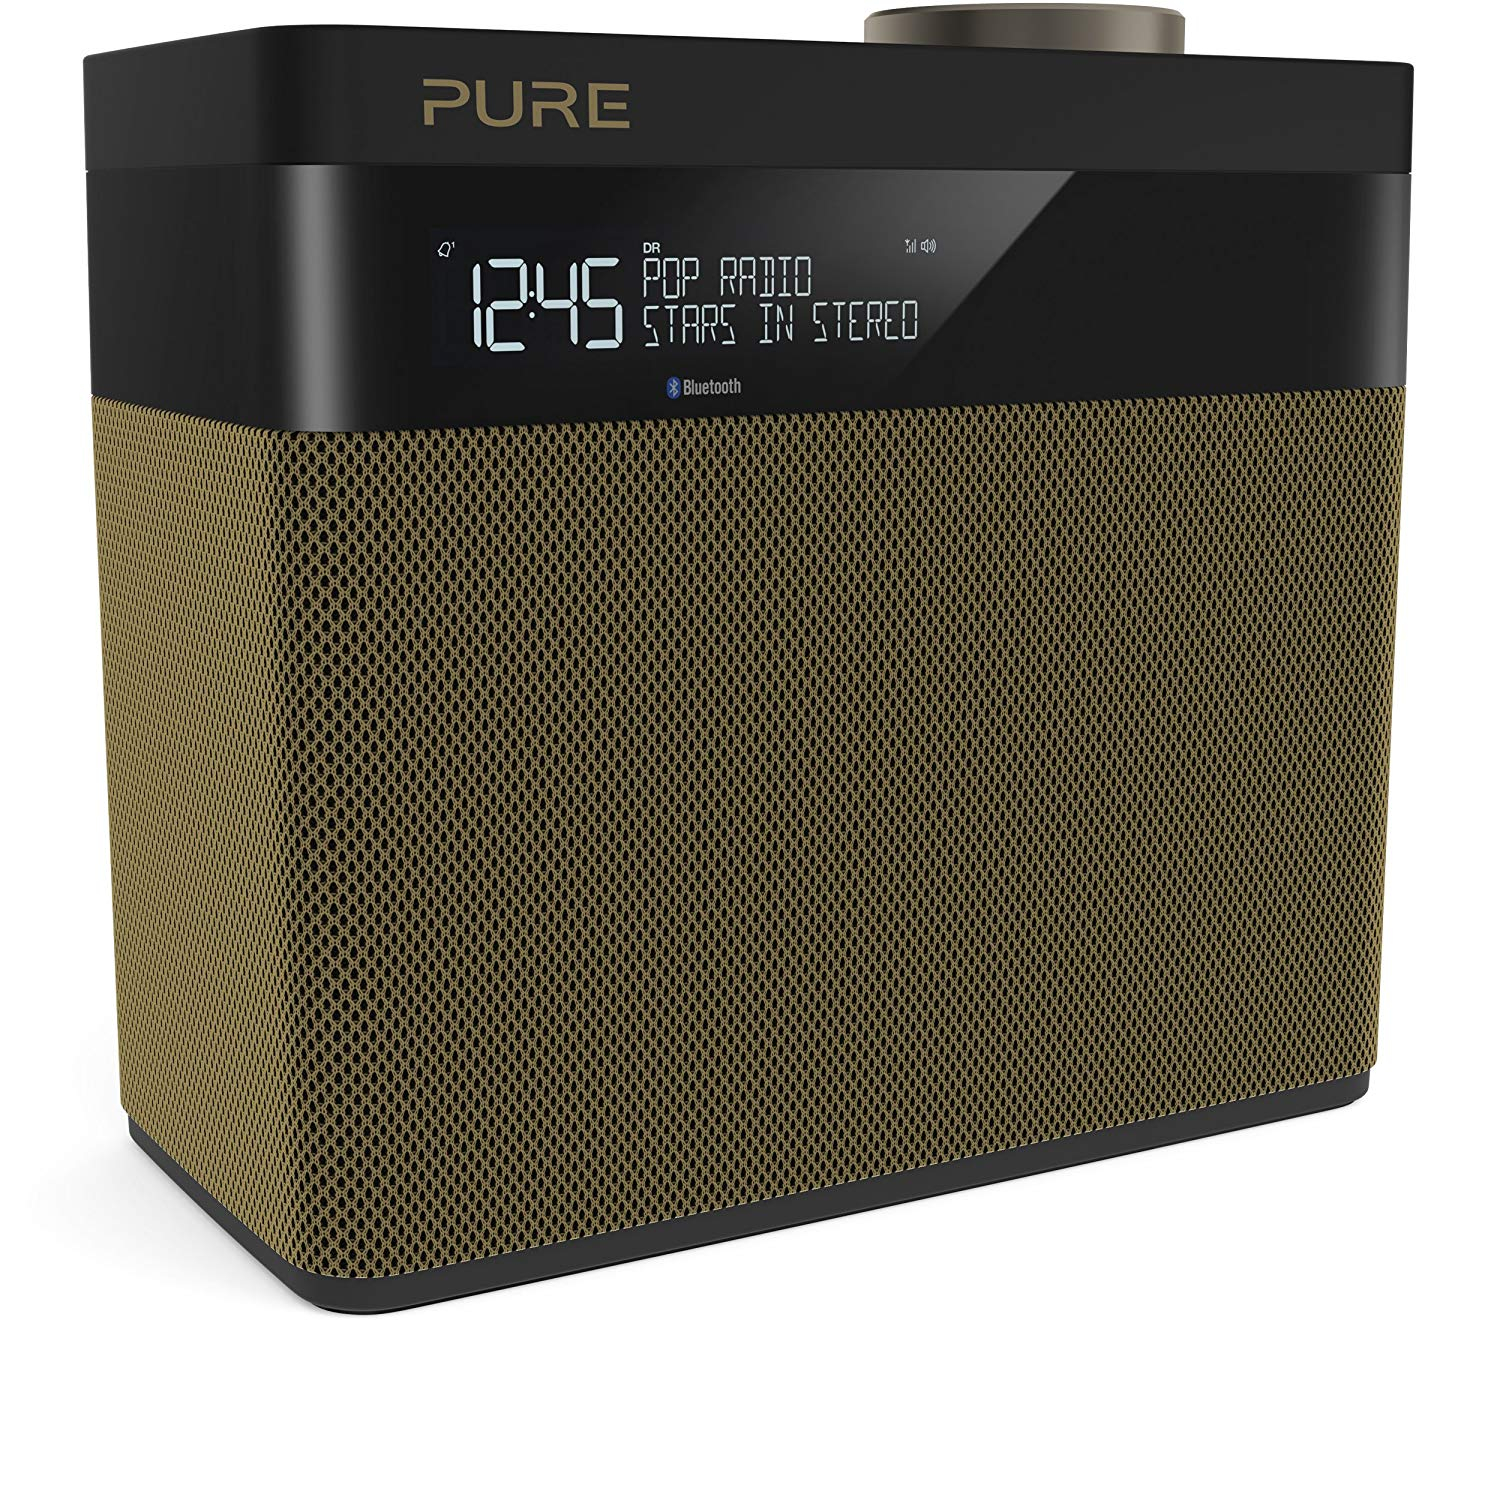 Pure Pop Maxi S (Gold) Stereo DAB/FM digital and FM radio with Bluetooth